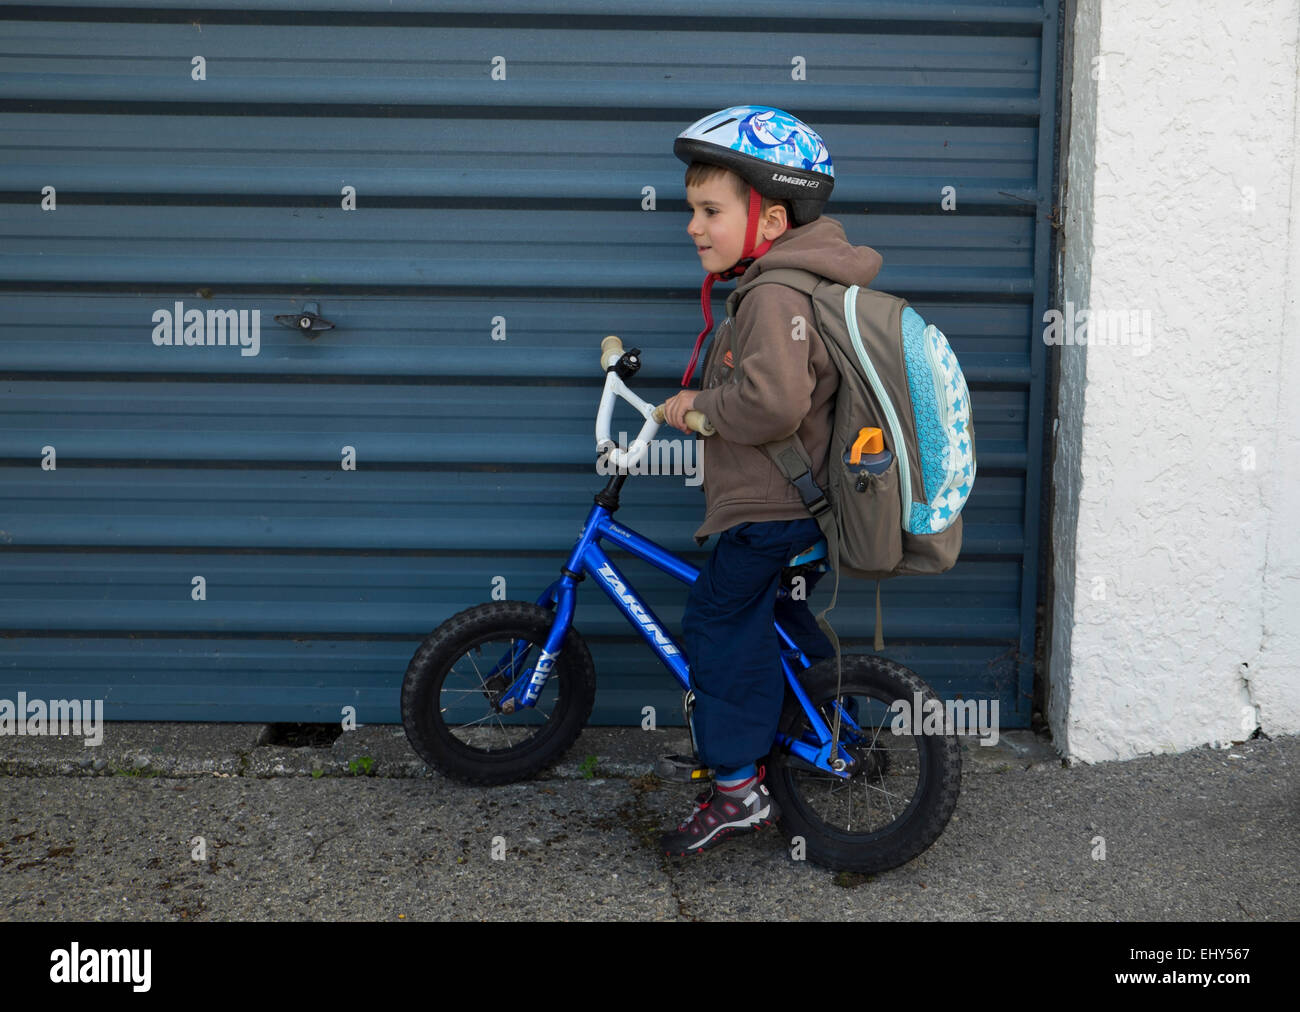 Four year old boy with backpack on bike with helmet - Stock Image